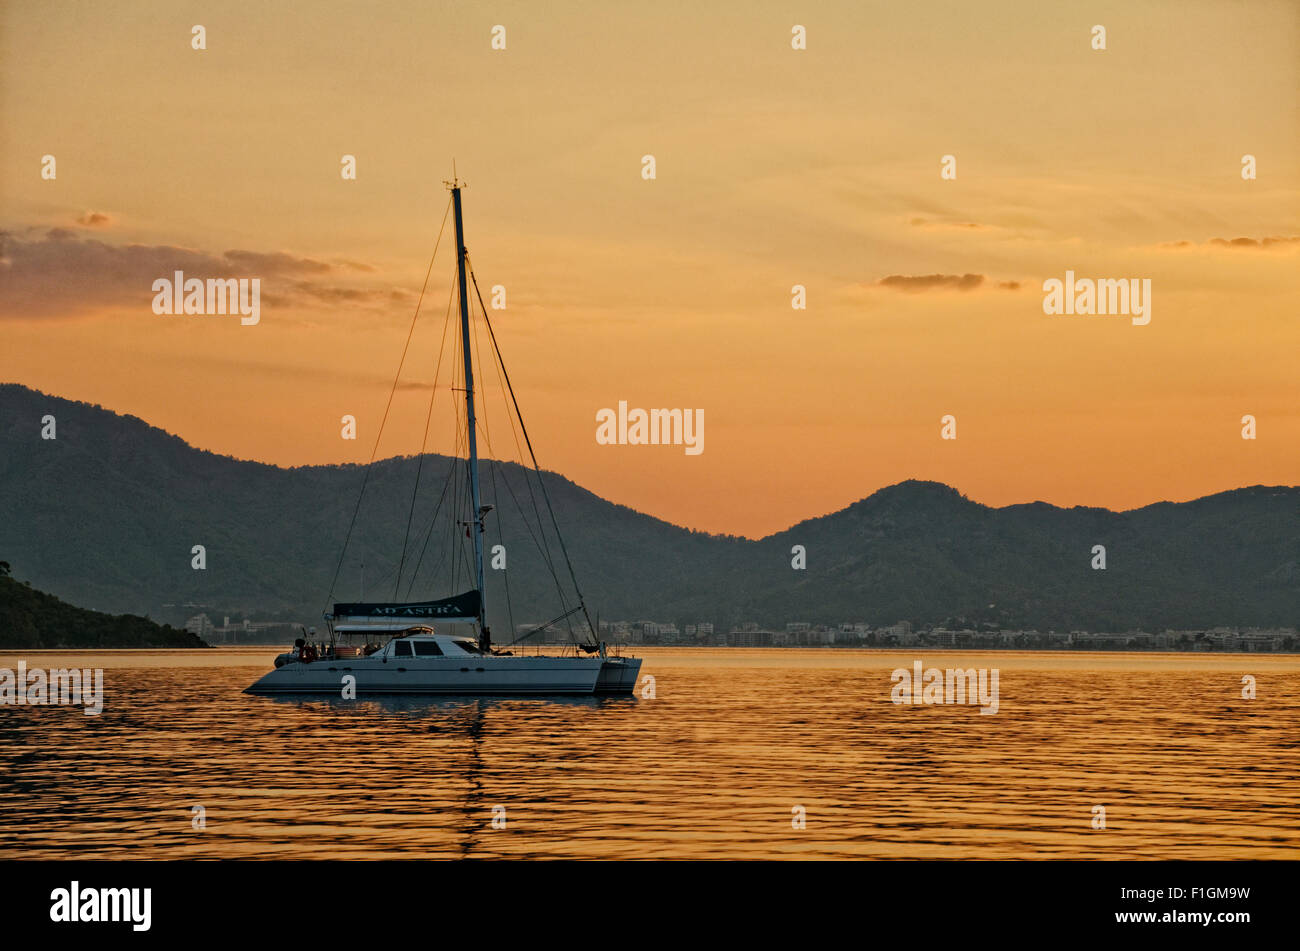 Catamaran anchored off-shore at sunset - Stock Image